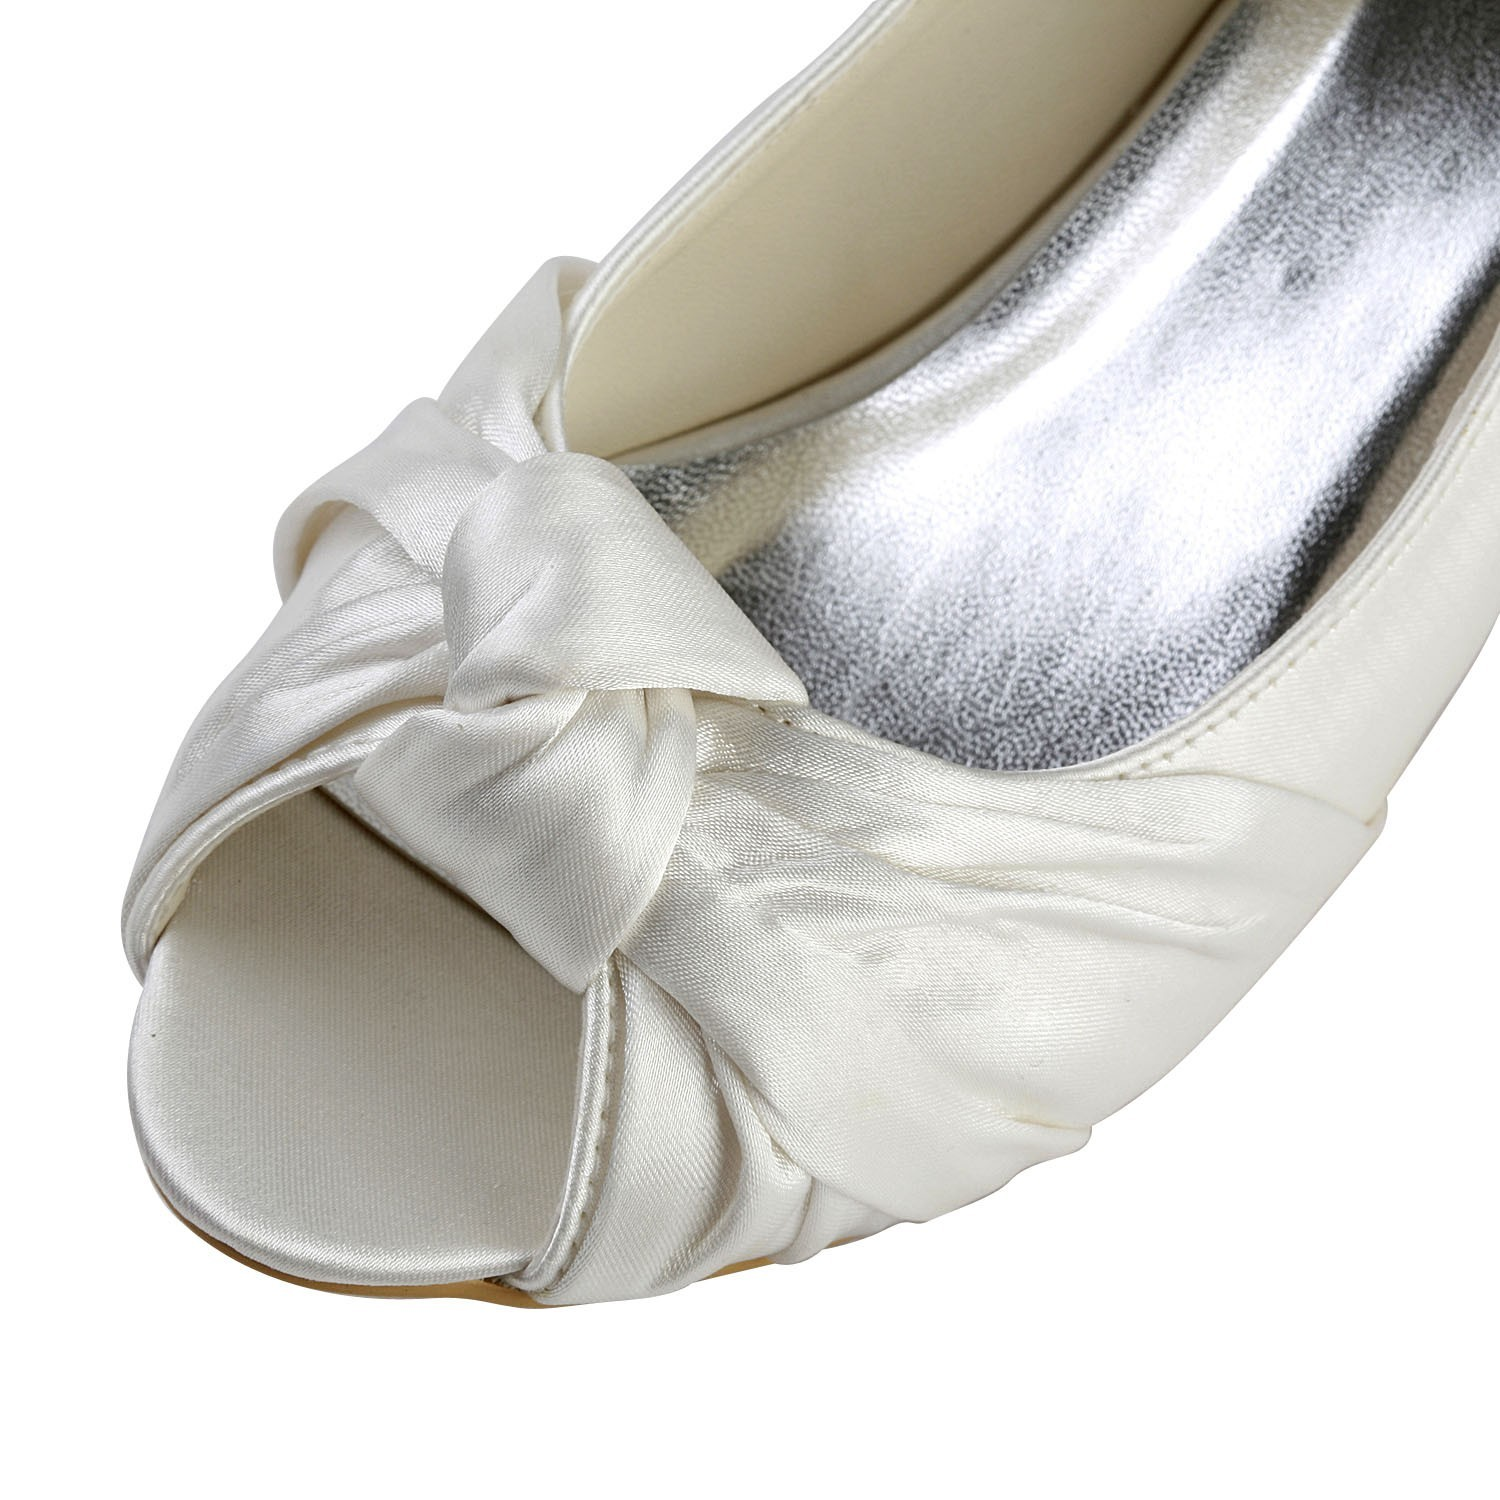 Satin Low Heel P Toe Sandals Wedding Shoes With Bowknot 6 Jpg